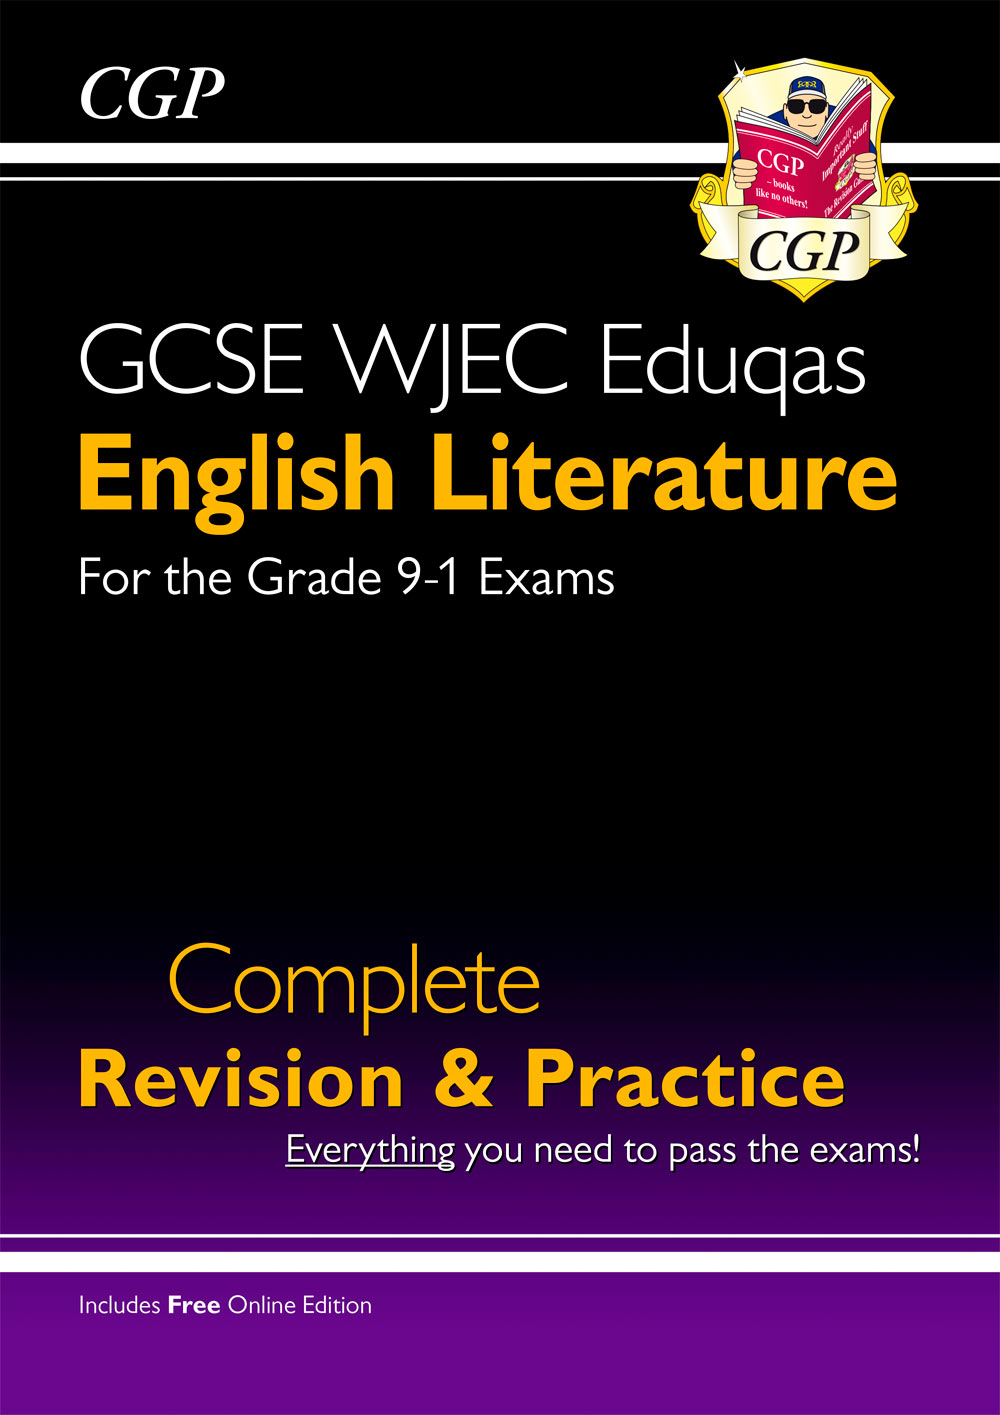 ELWS41 - New Grade 9-1 GCSE English Literature WJEC Eduqas Complete Revision & Practice (with Online